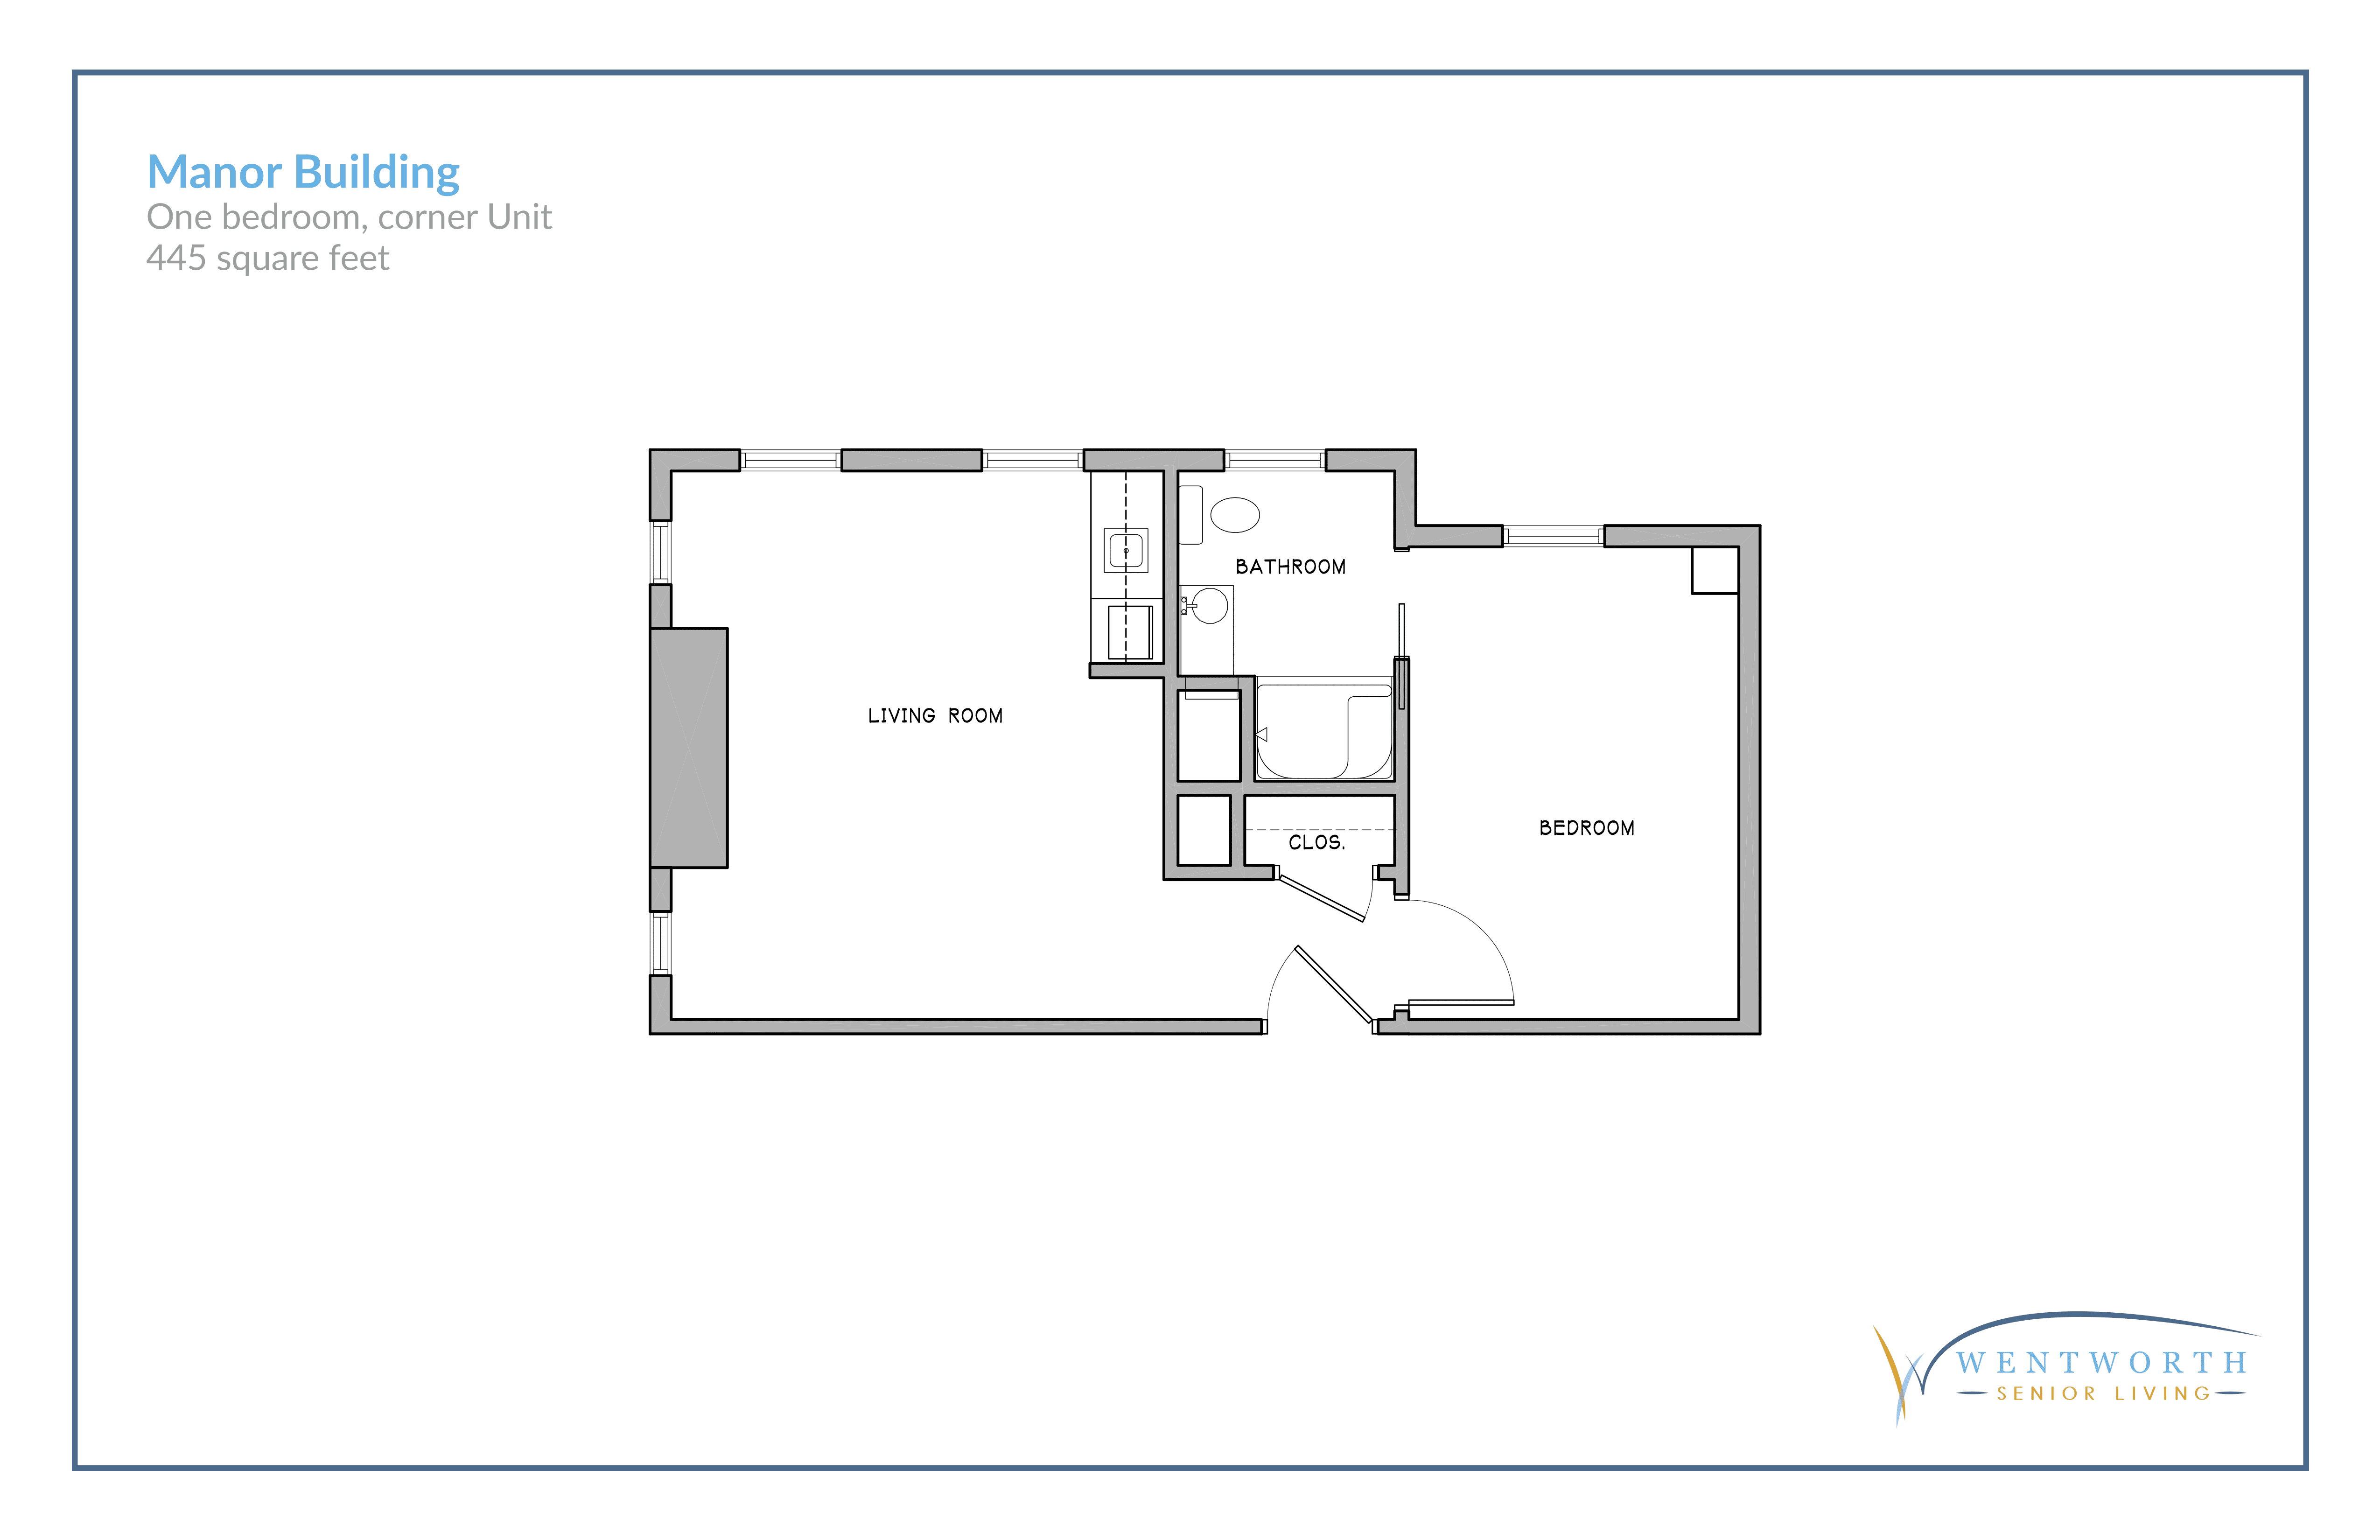 Floor plan for one bedroom corner unit.